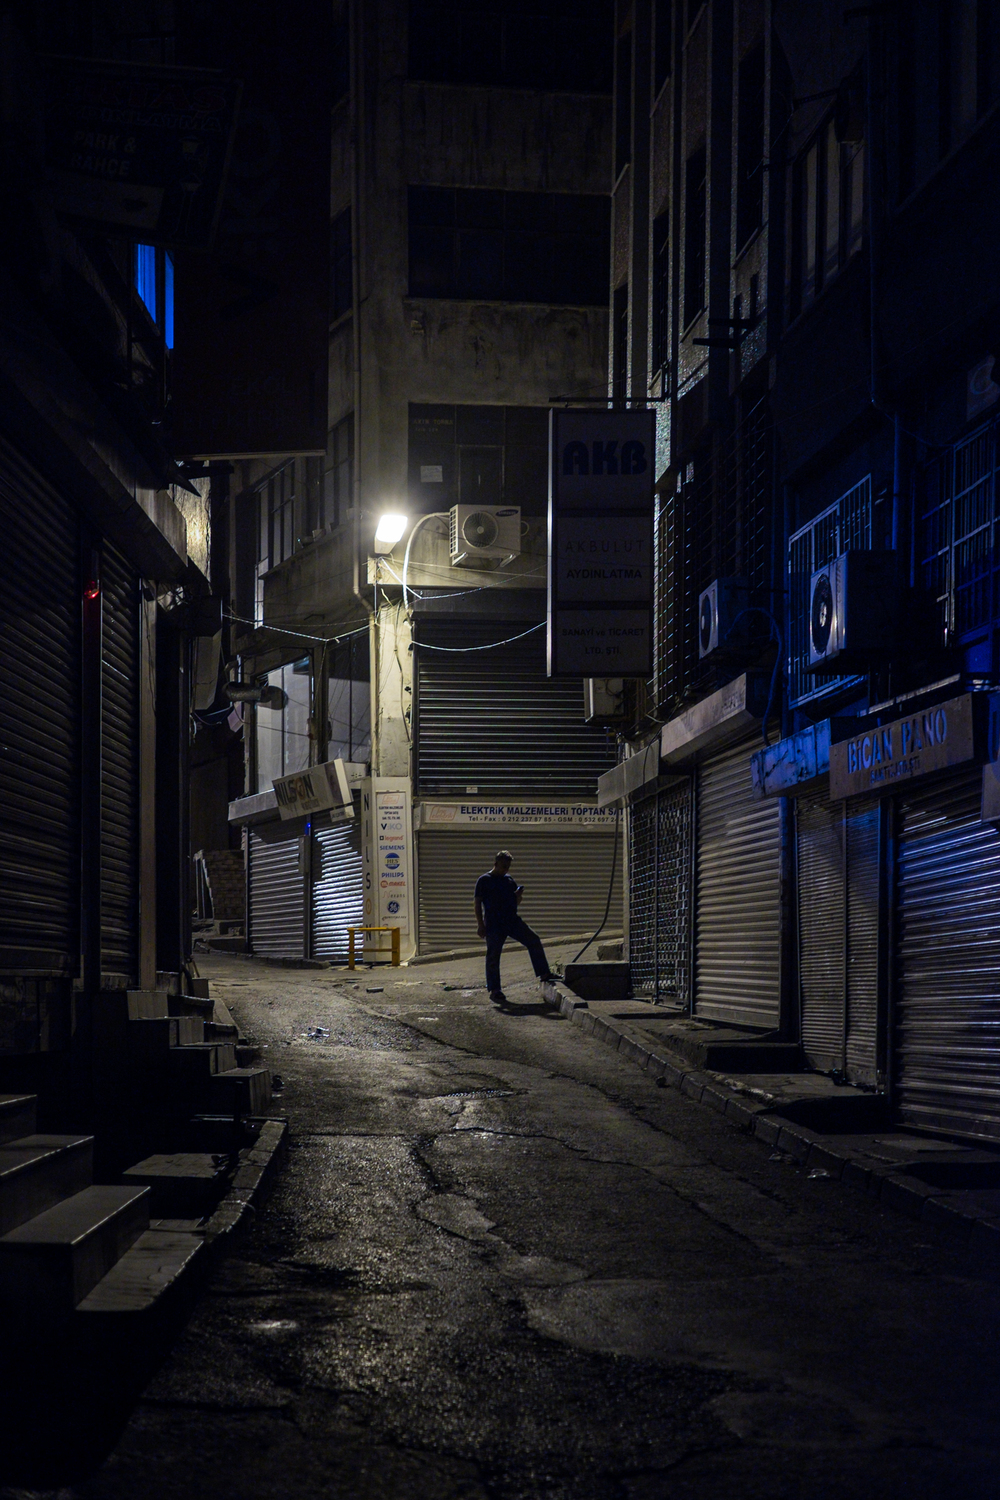 Man-standing-Night-between-Buildings-Shadows-Beyoğlu-Istanbul-Matthew-Coleman-Photography